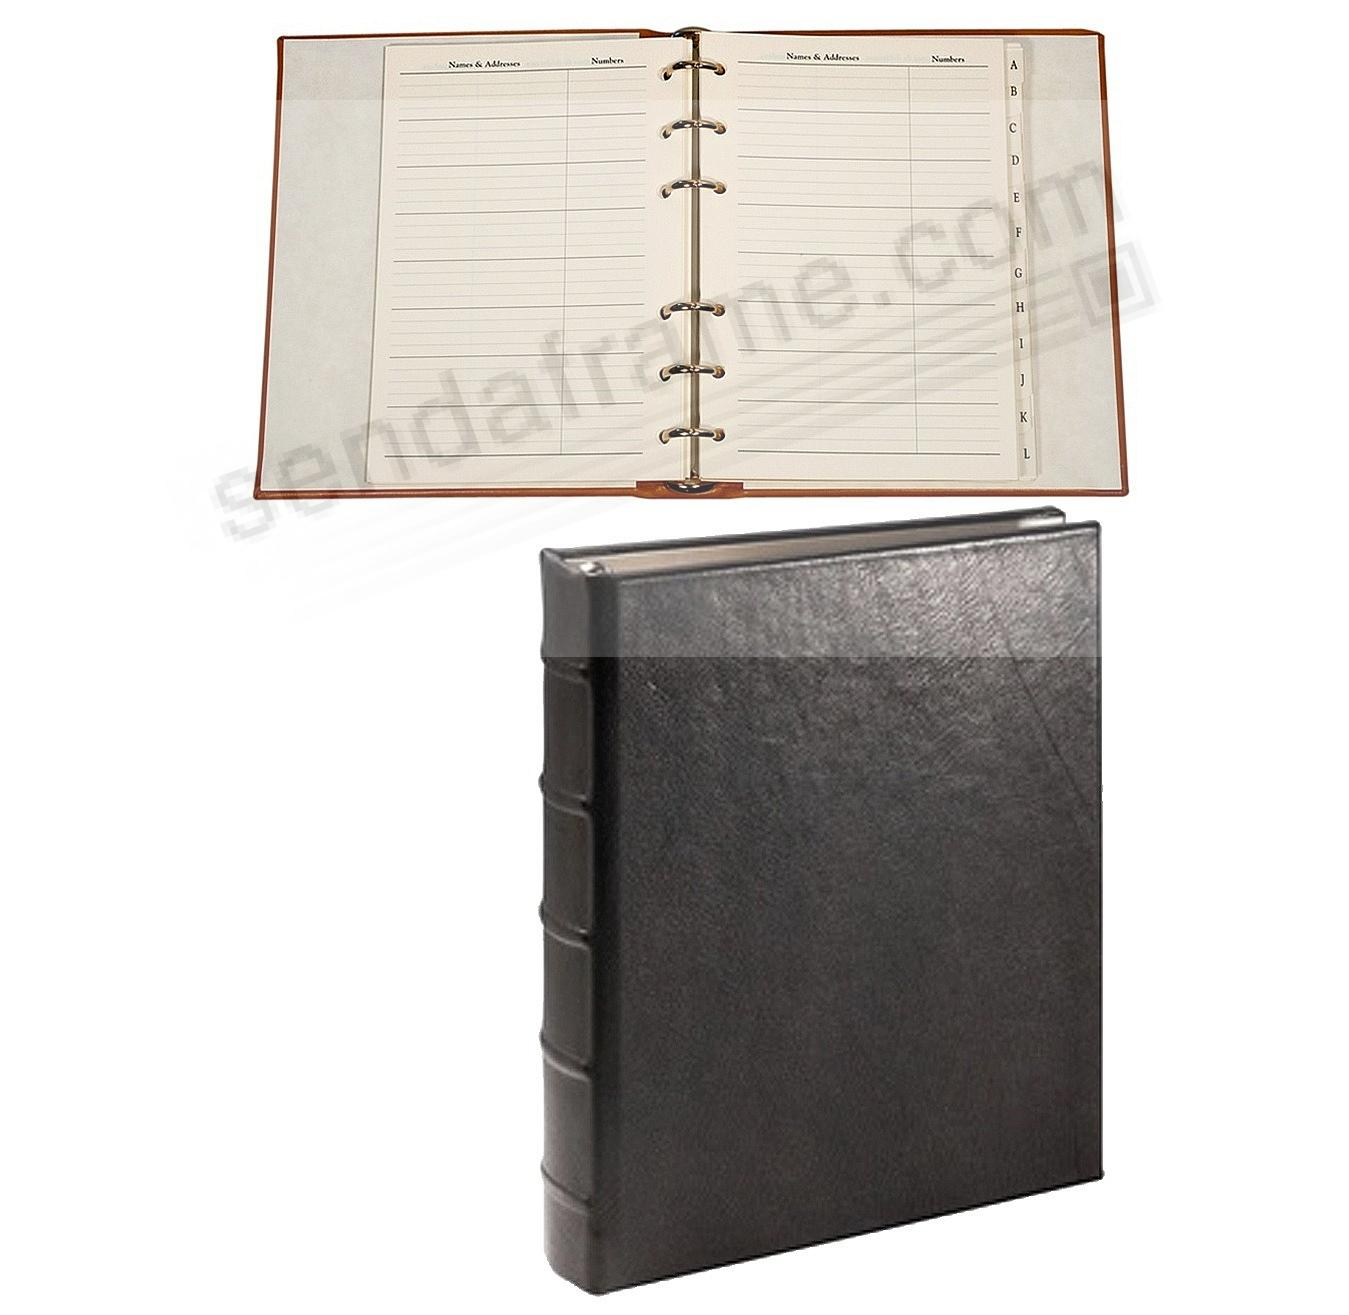 Desk Address Book - Refillable - BLACK Calfskin Leather by Graphic Image™